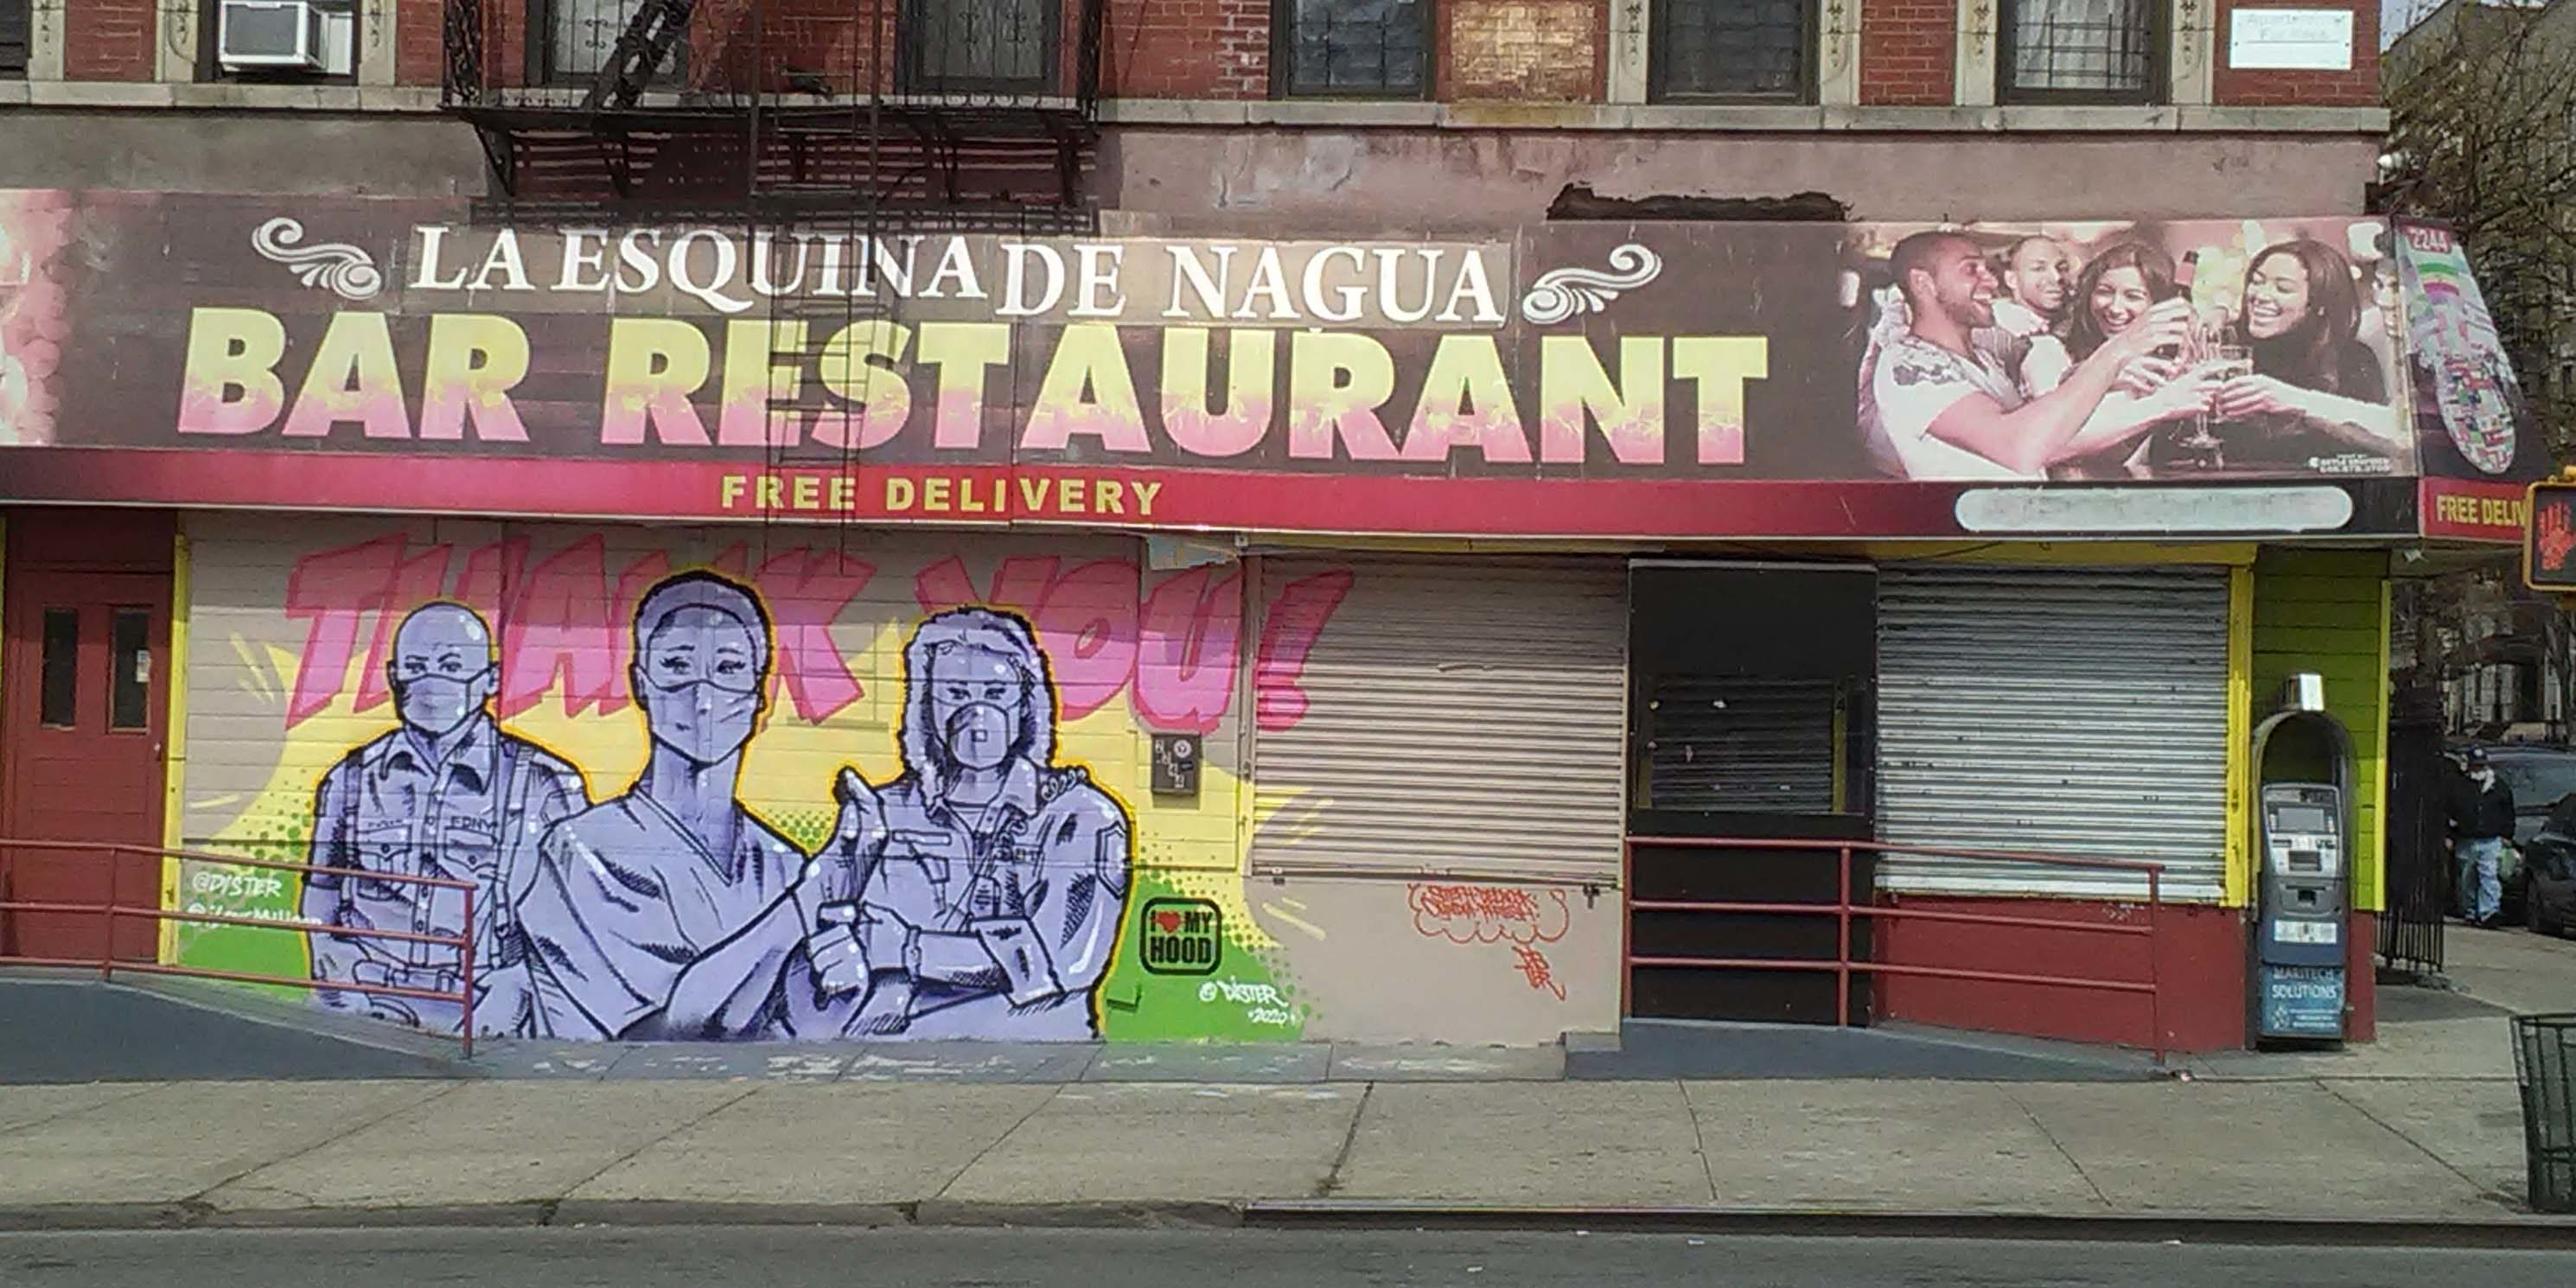 mural depicting medical workers outside a restaurant